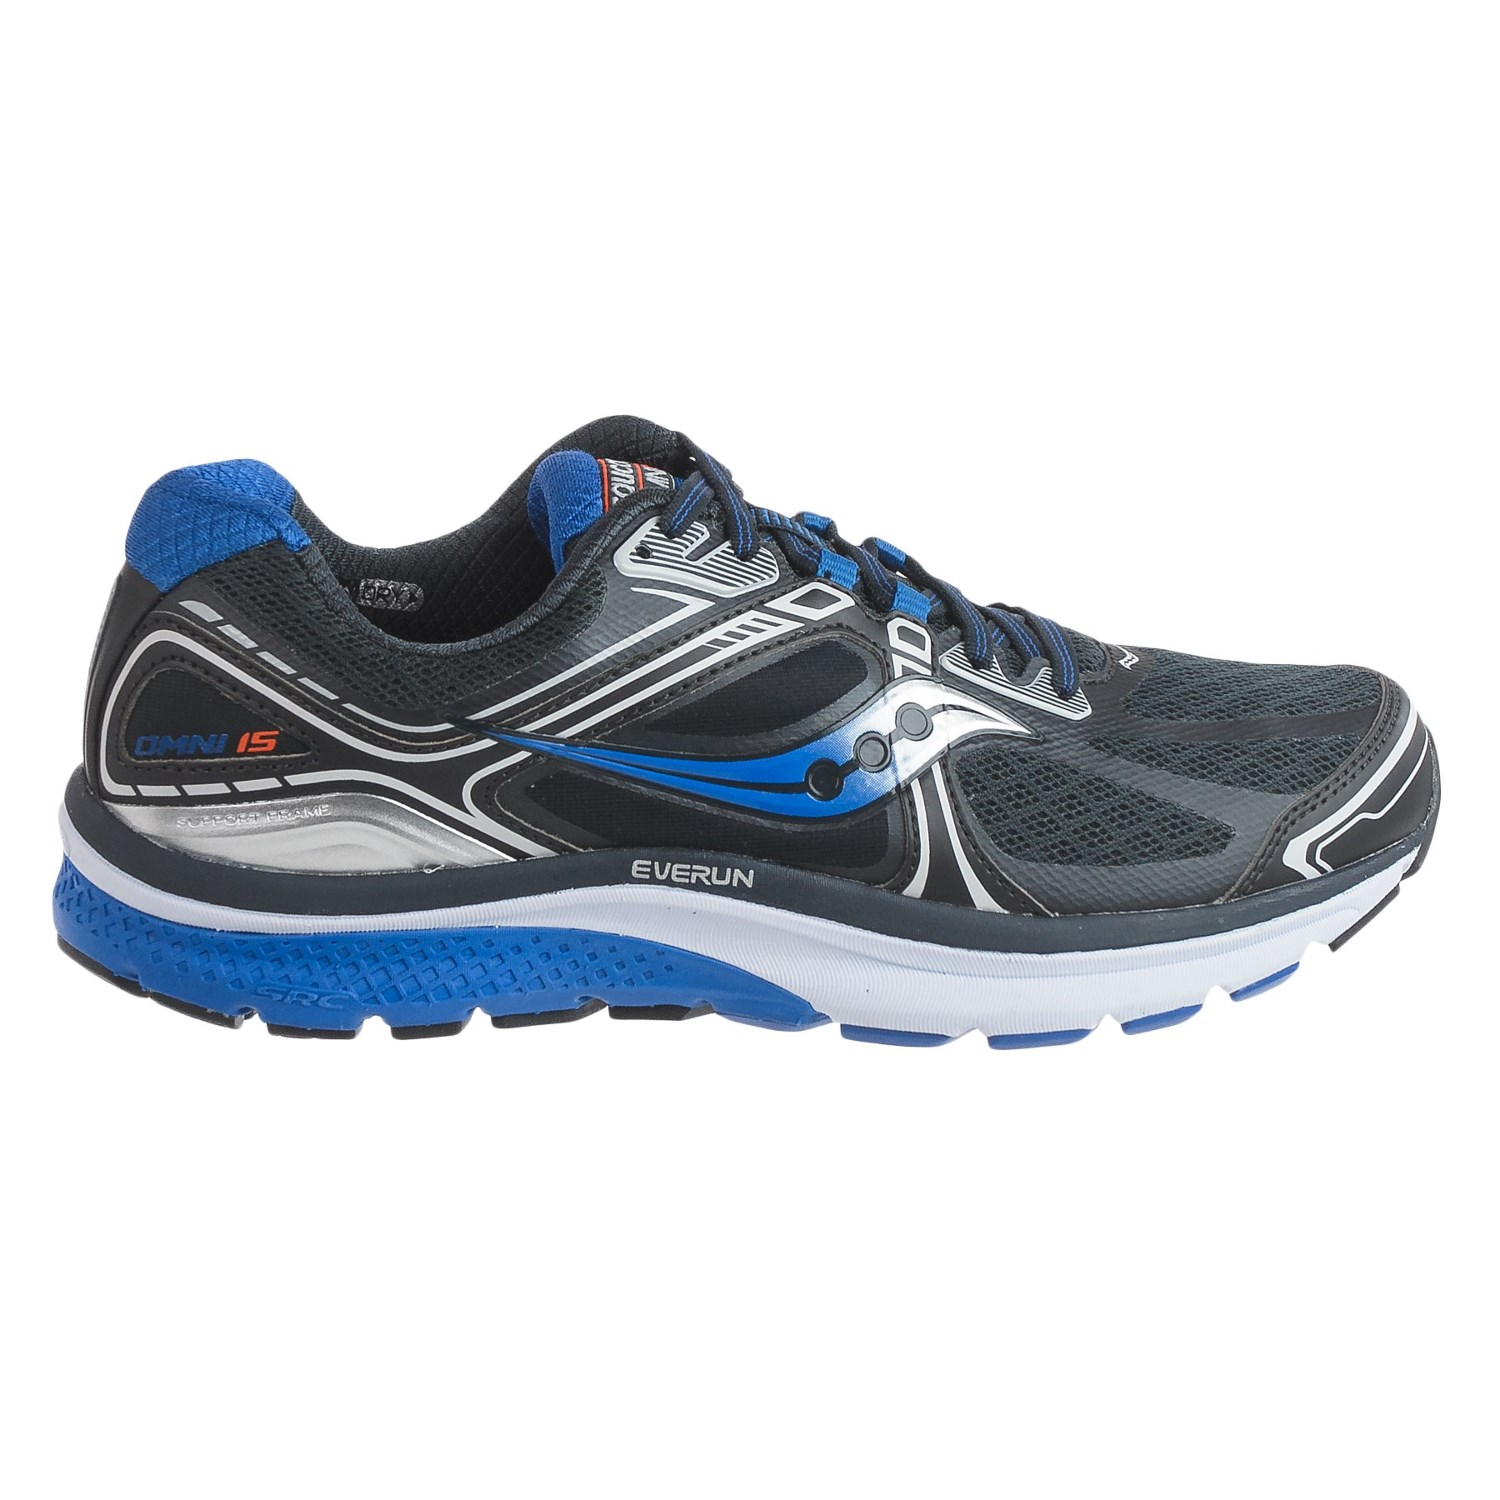 saucony running shoes saucony omni 15 running shoes (for men) QZPFOTV